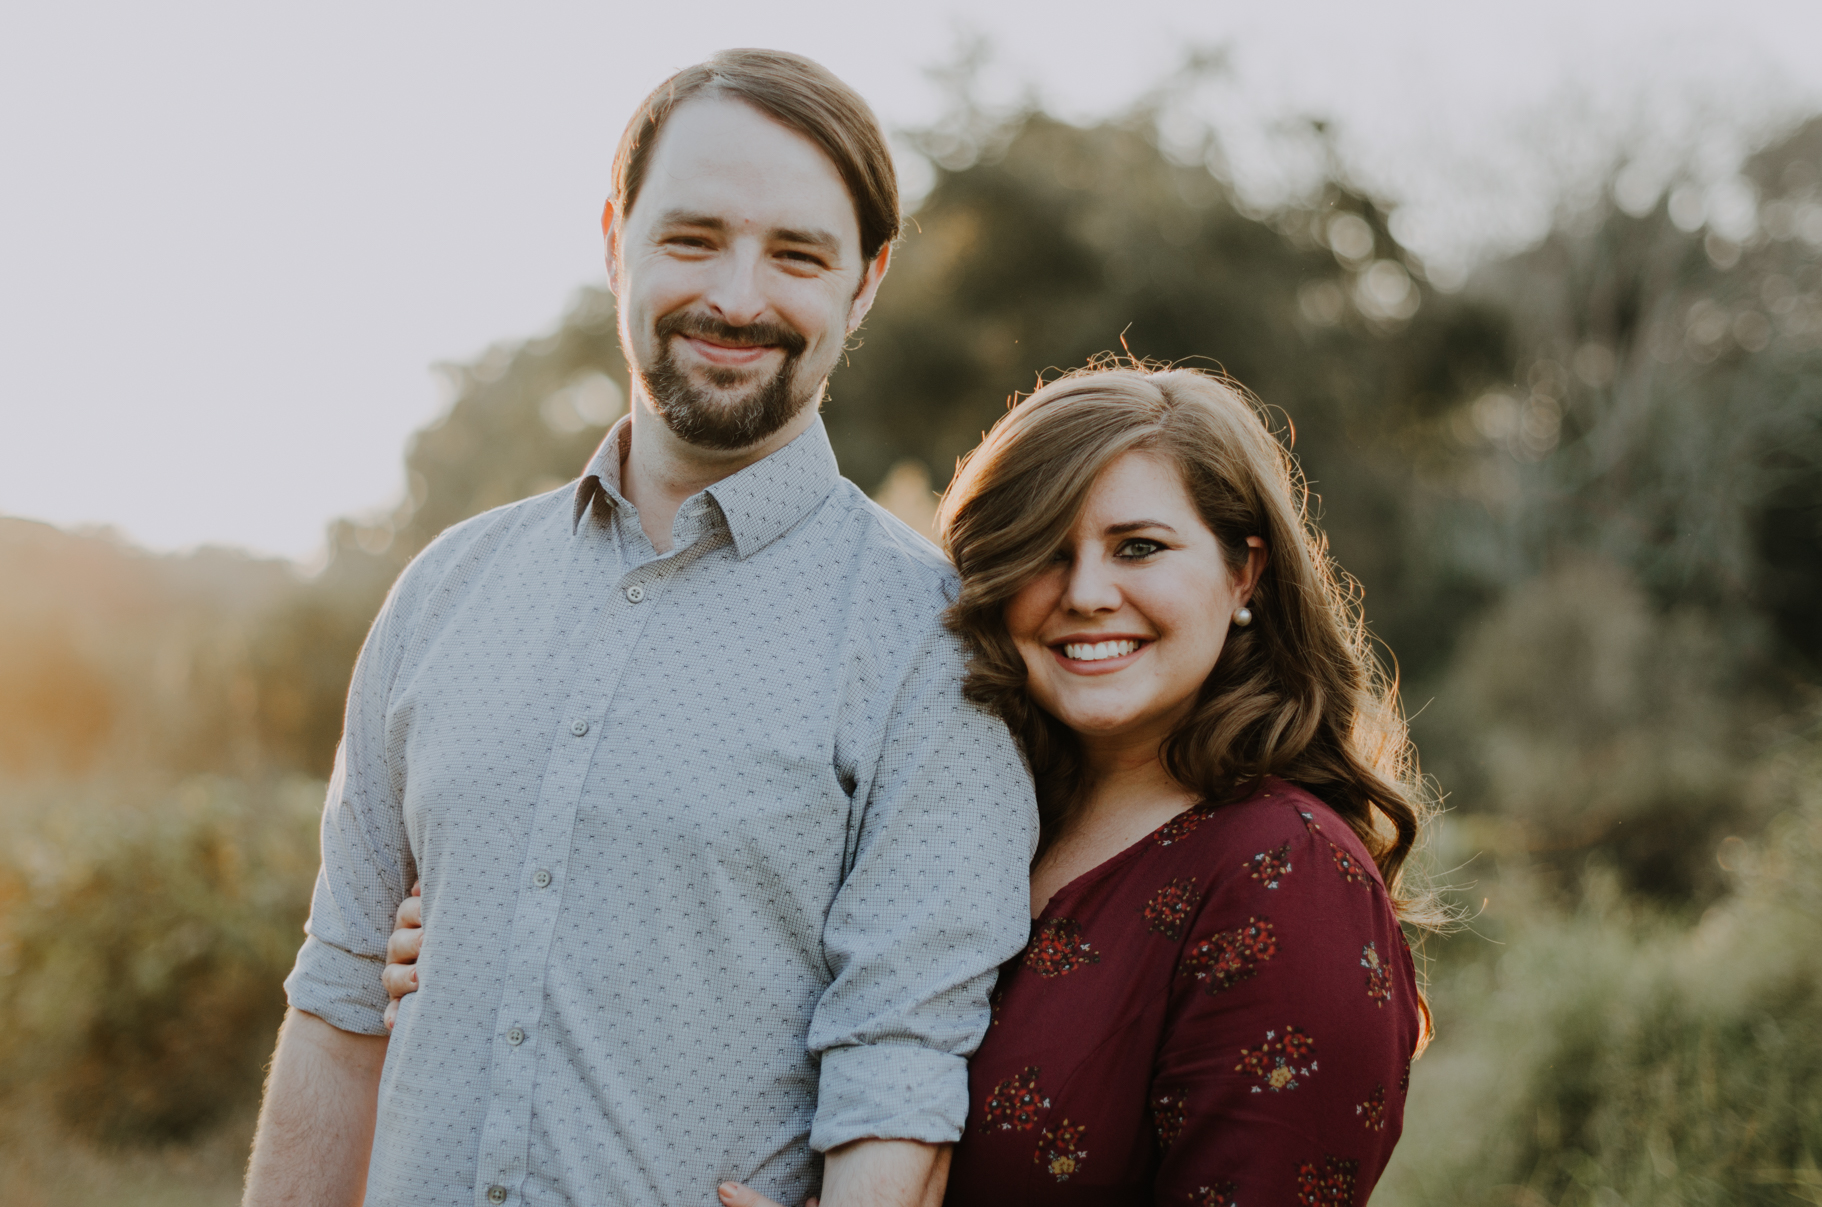 tampa anniversary session | tampa wedding photography | freehearted film co